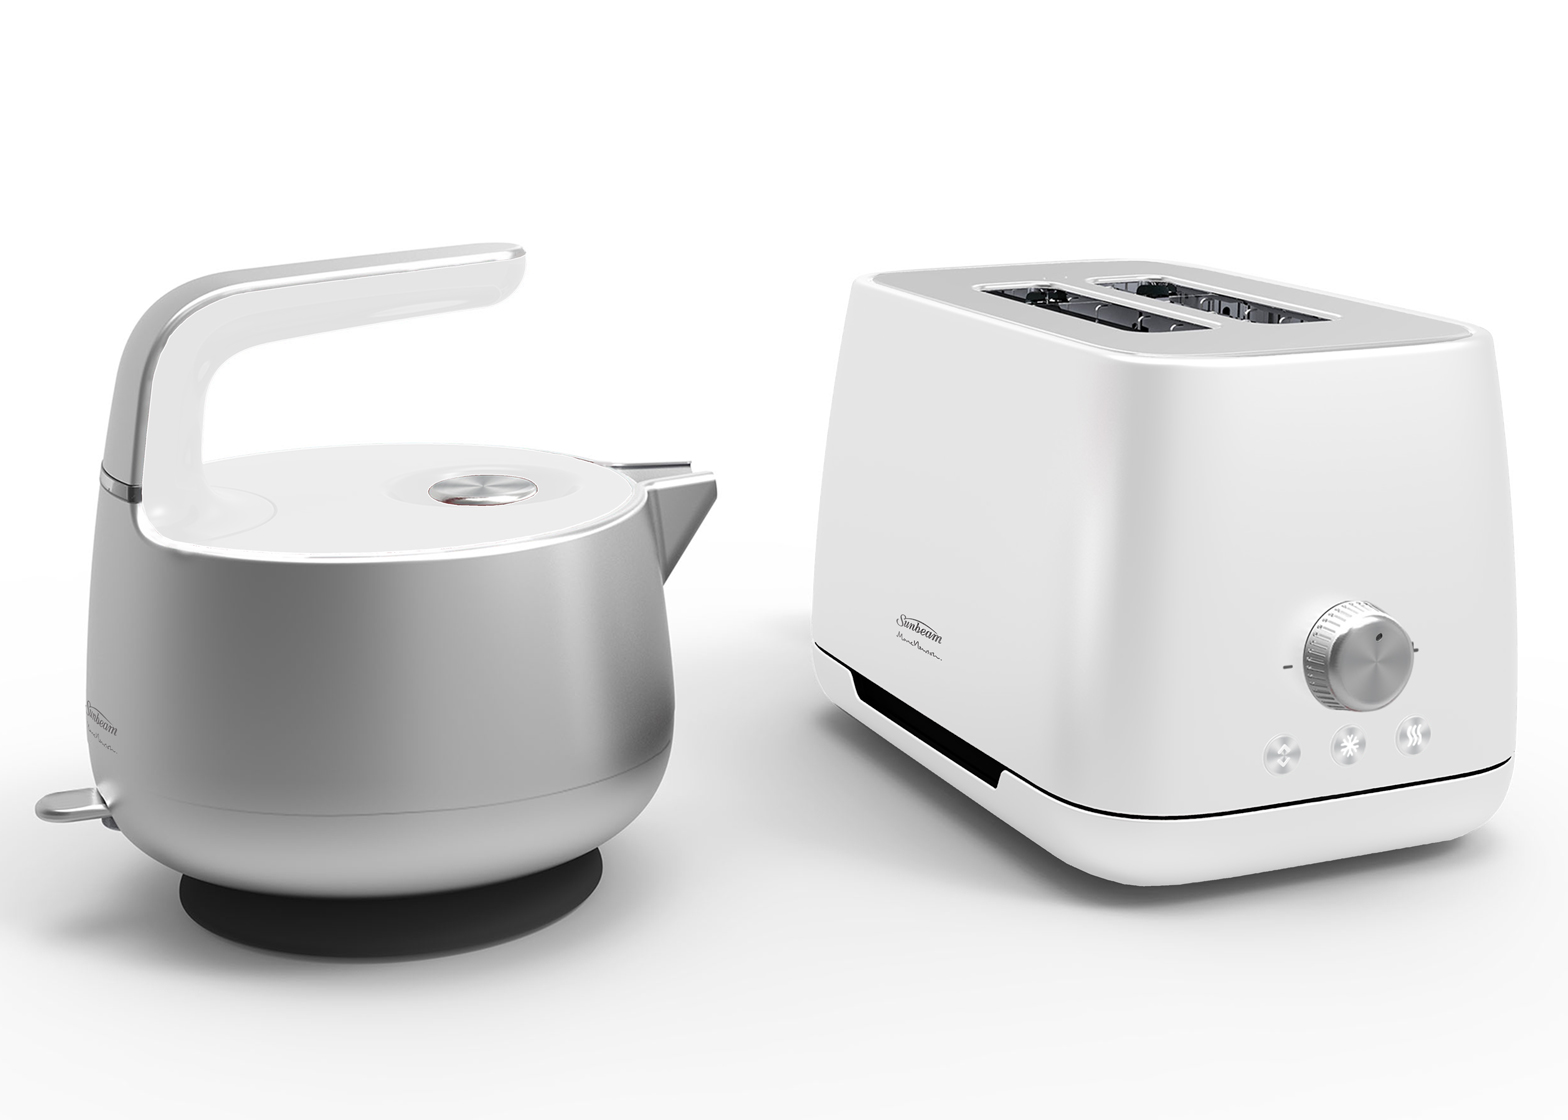 Colourful Kitchen Appliances Marc Newson Designs Matching Kettle And Toaster For Sunbeam